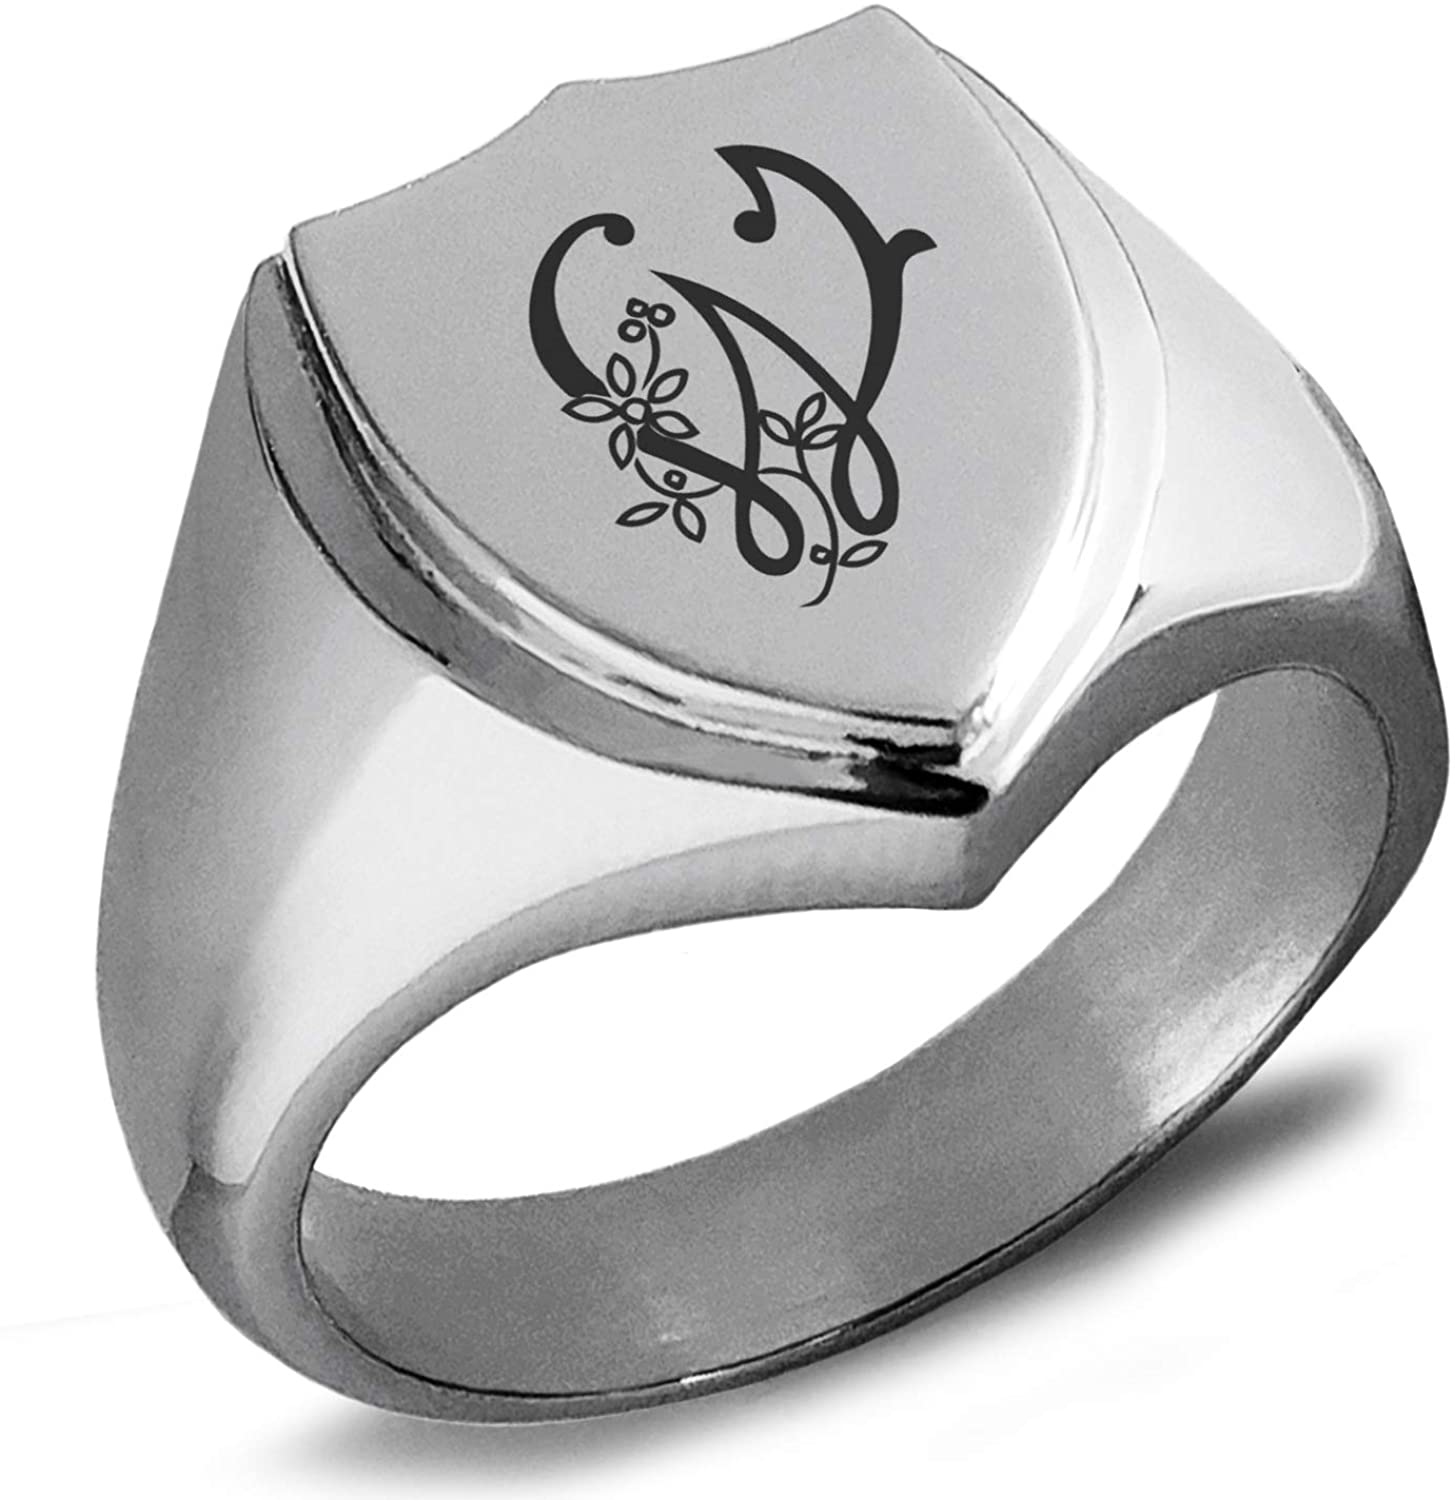 Tioneer Stainless Steel Letter W Initial Floral Monogram Shield Biker Style Polished Ring